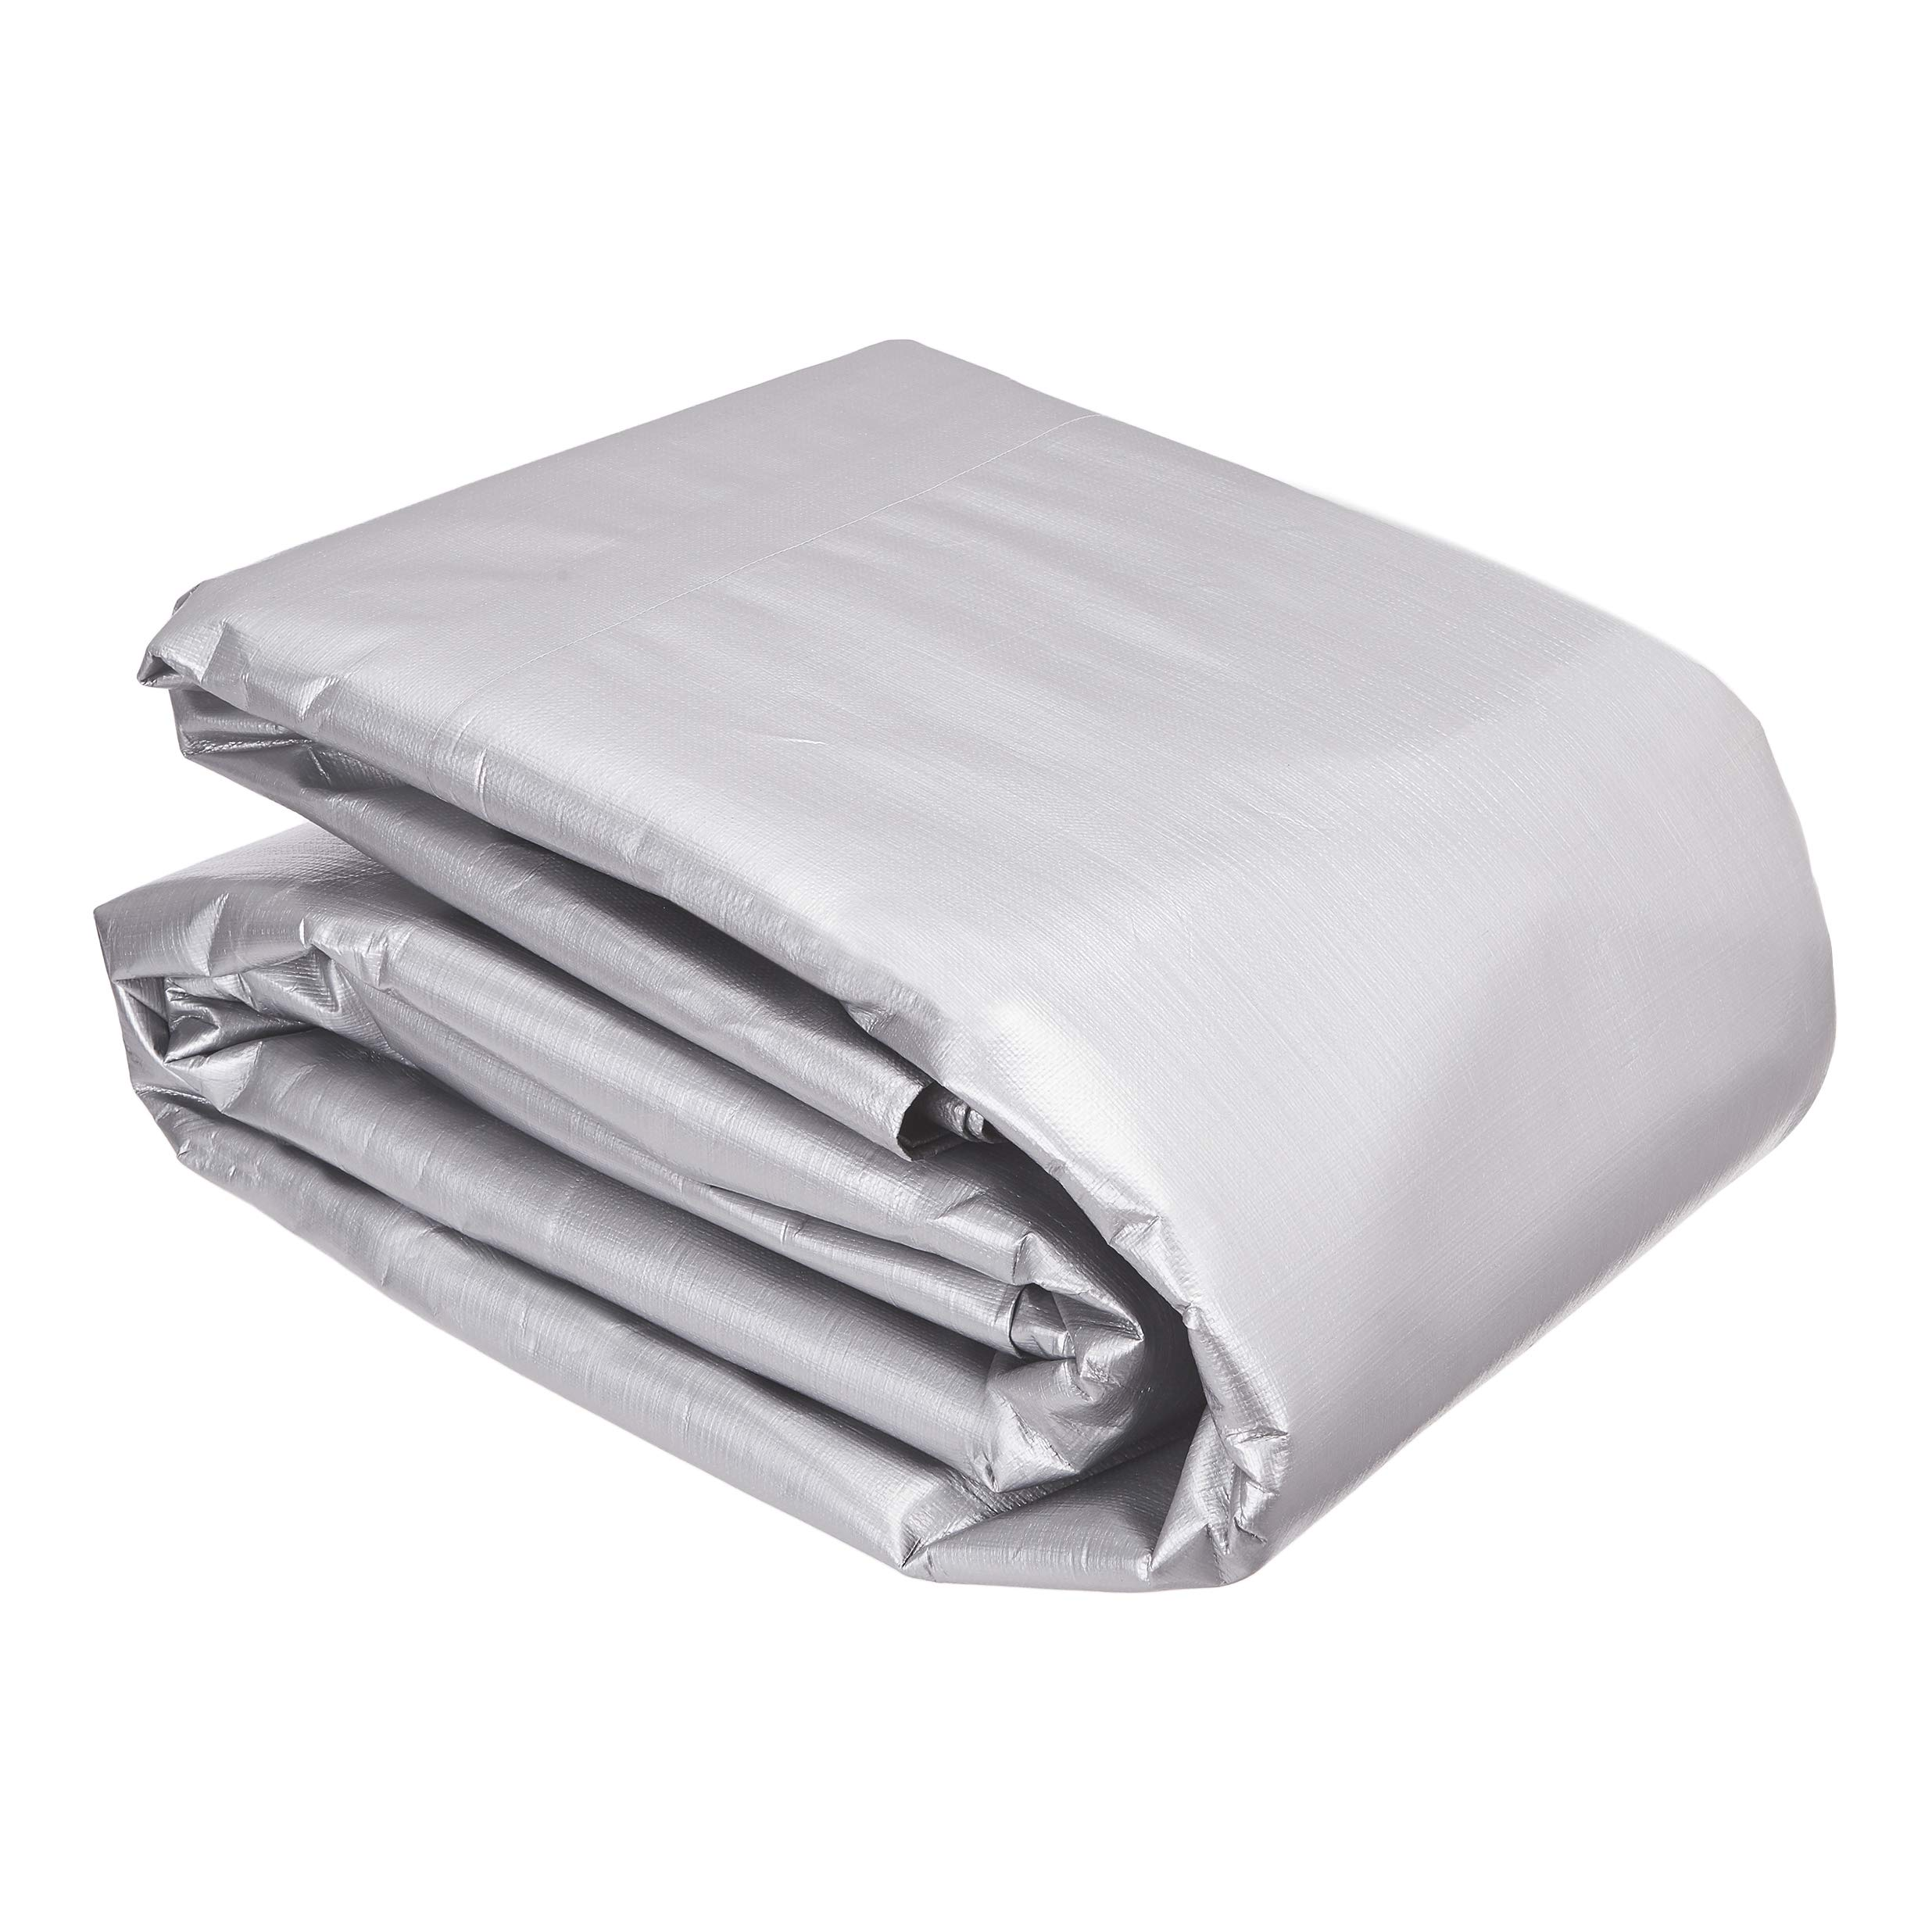 AmazonCommercial Multi Purpose Waterproof Poly Tarp Cover, 20 X 40 FT, 16MIL Thick, Silver/Black, 1-Pack